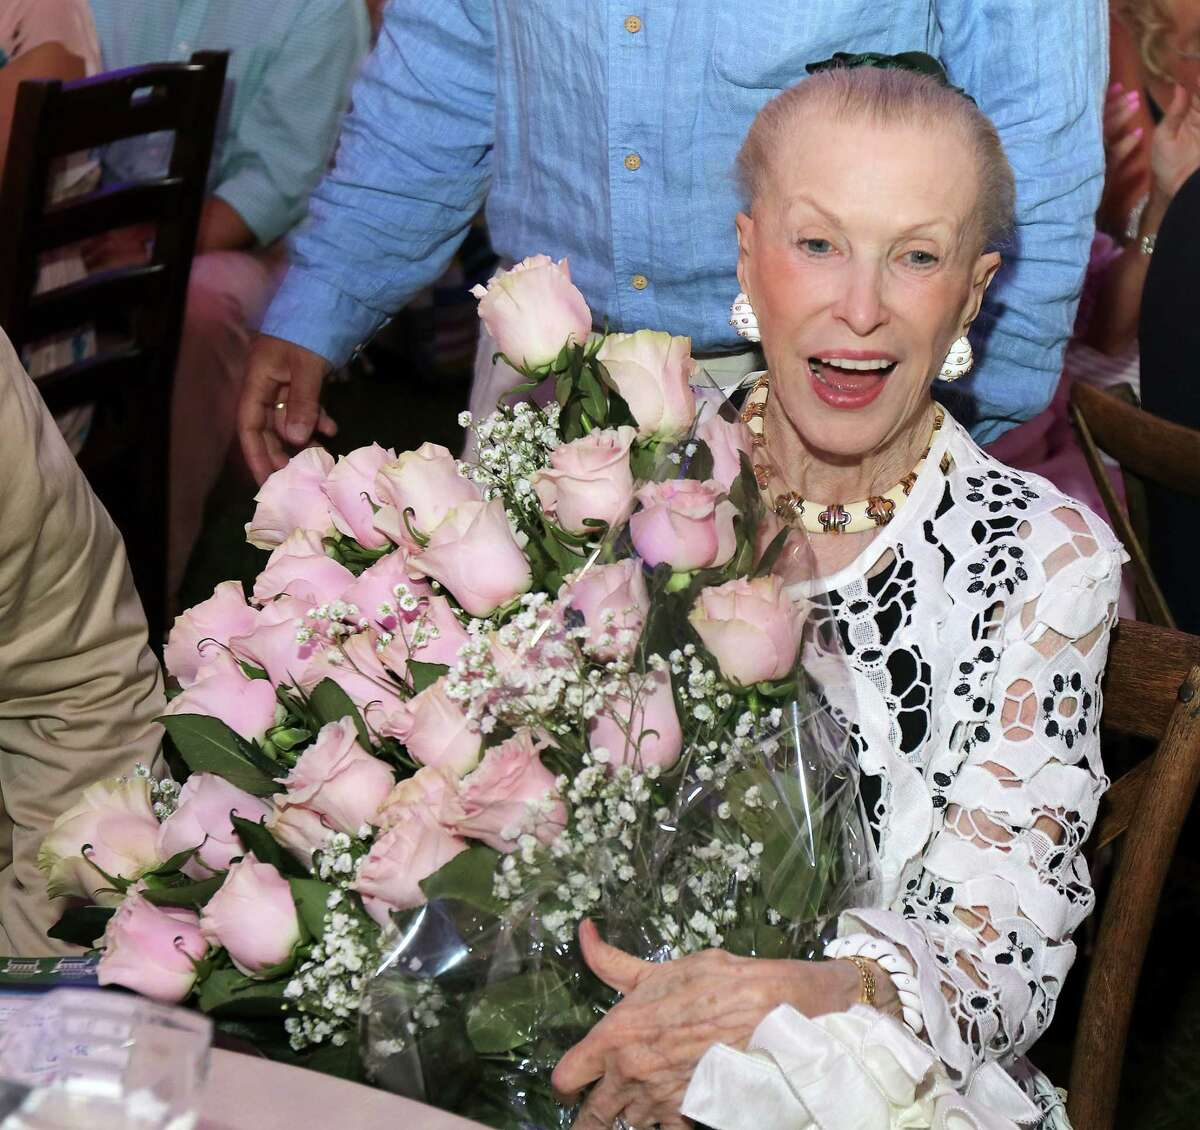 Saratoga Springs, NY - August 2, 2017 - (Photo by Joe Putrock/Special to the Times Union) - Philanthropist Marylou Whitney was presented with dozens of roses, each representing a year of support for Saratoga Hospital, during the Saratoga Hospital Foundationa€™s 35th Annual Summer Gala and Benefit Auction at Polo Meadows at the Saratoga Casino and Raceway. ORG XMIT: 09